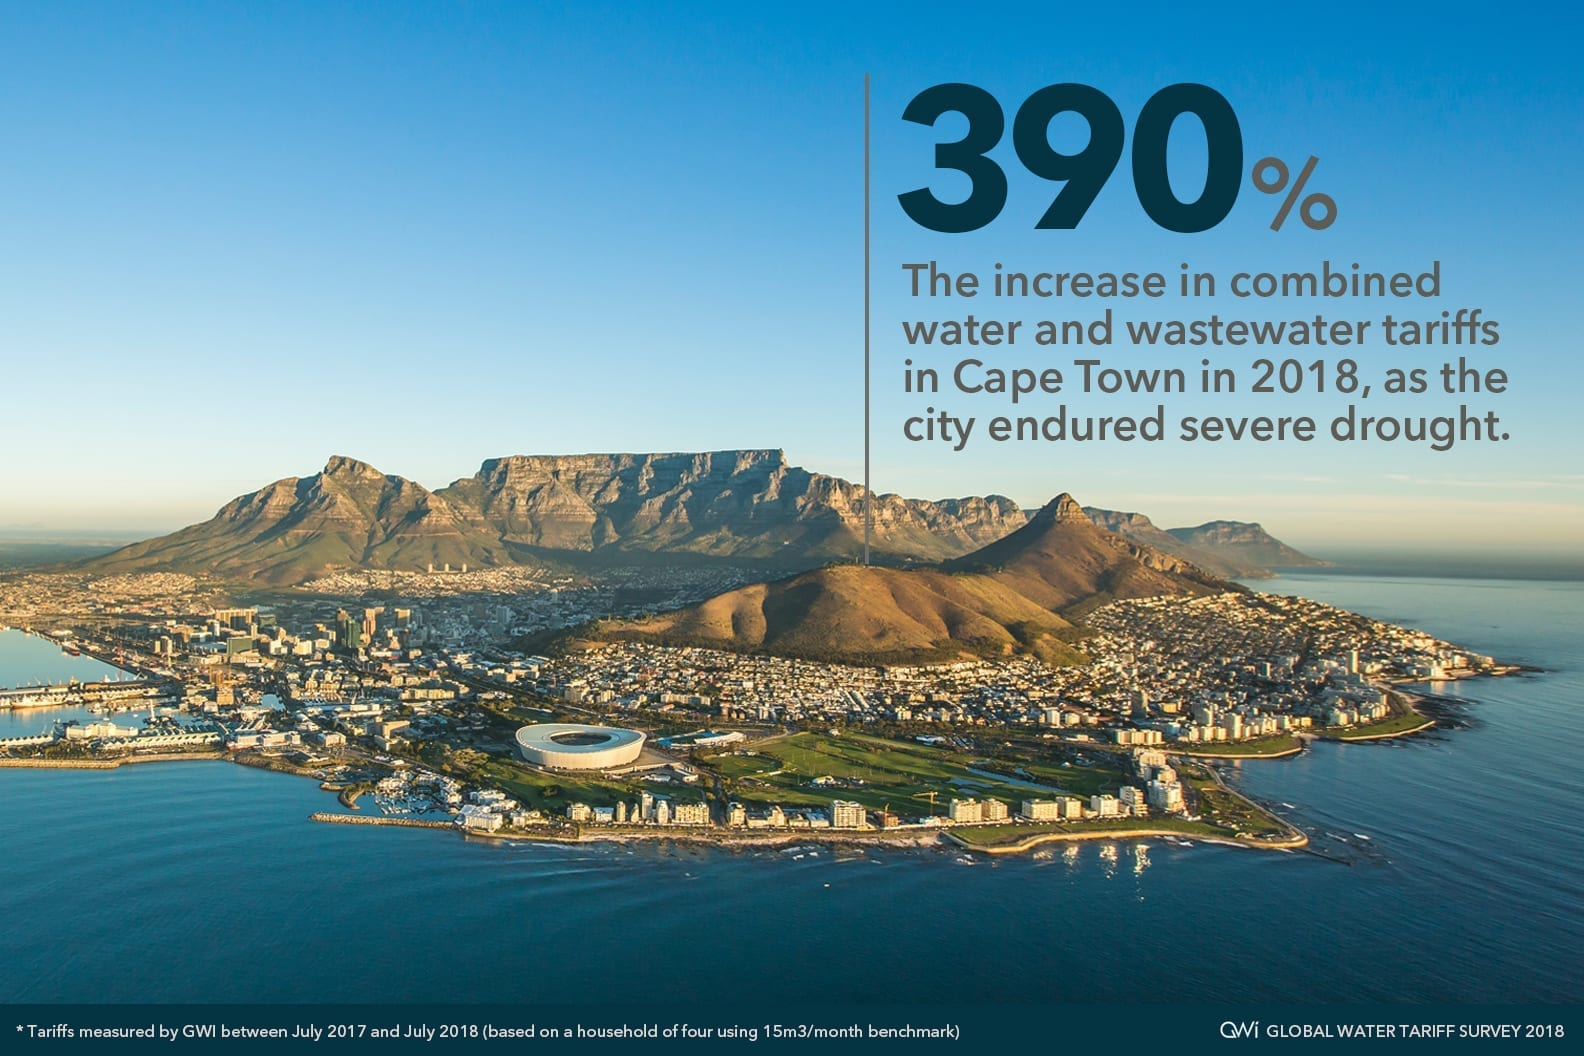 Cape Town tops list for largest water tariff increases